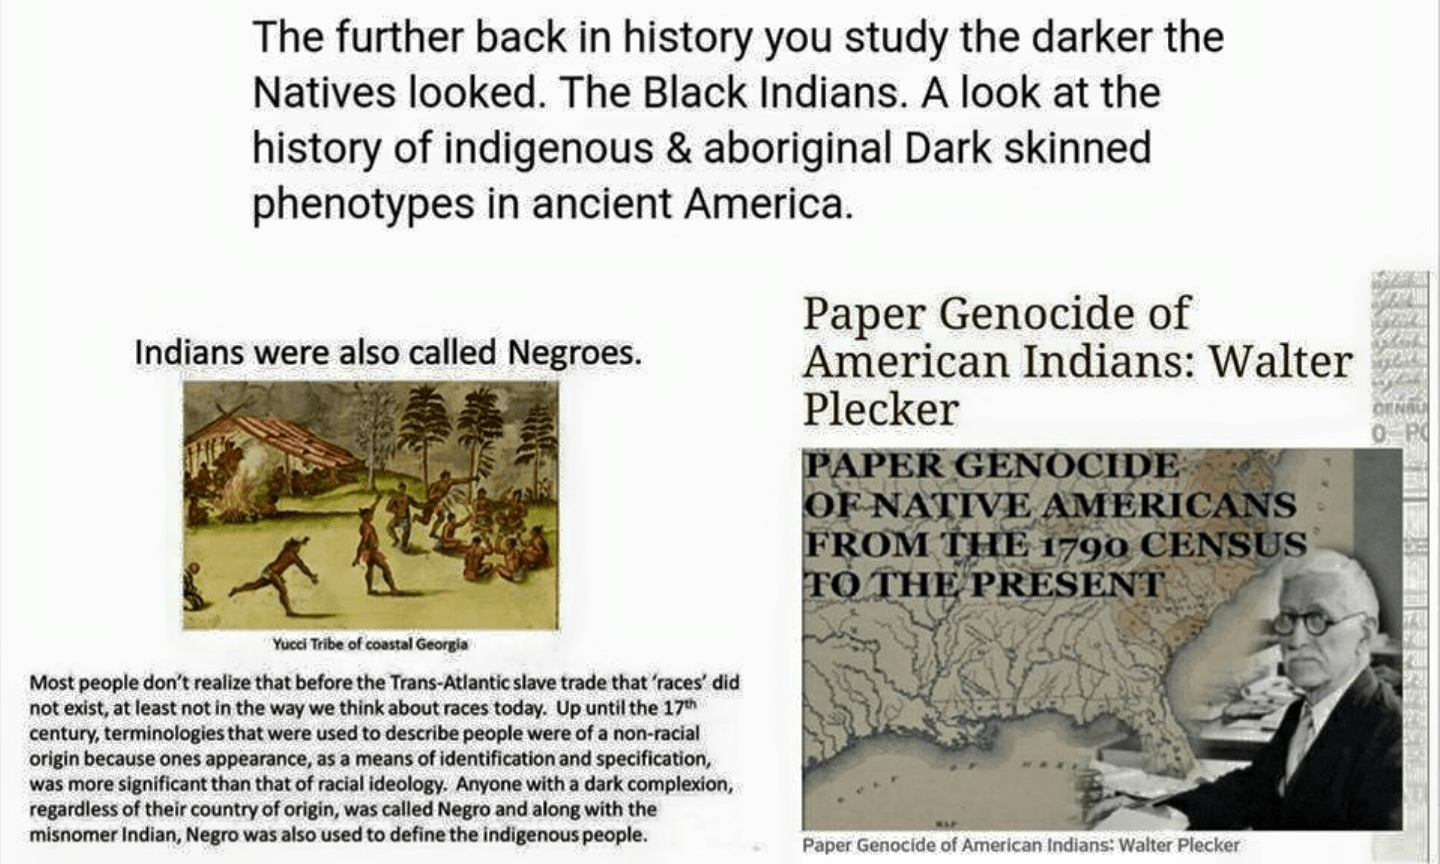 paper genocide from native to negro image